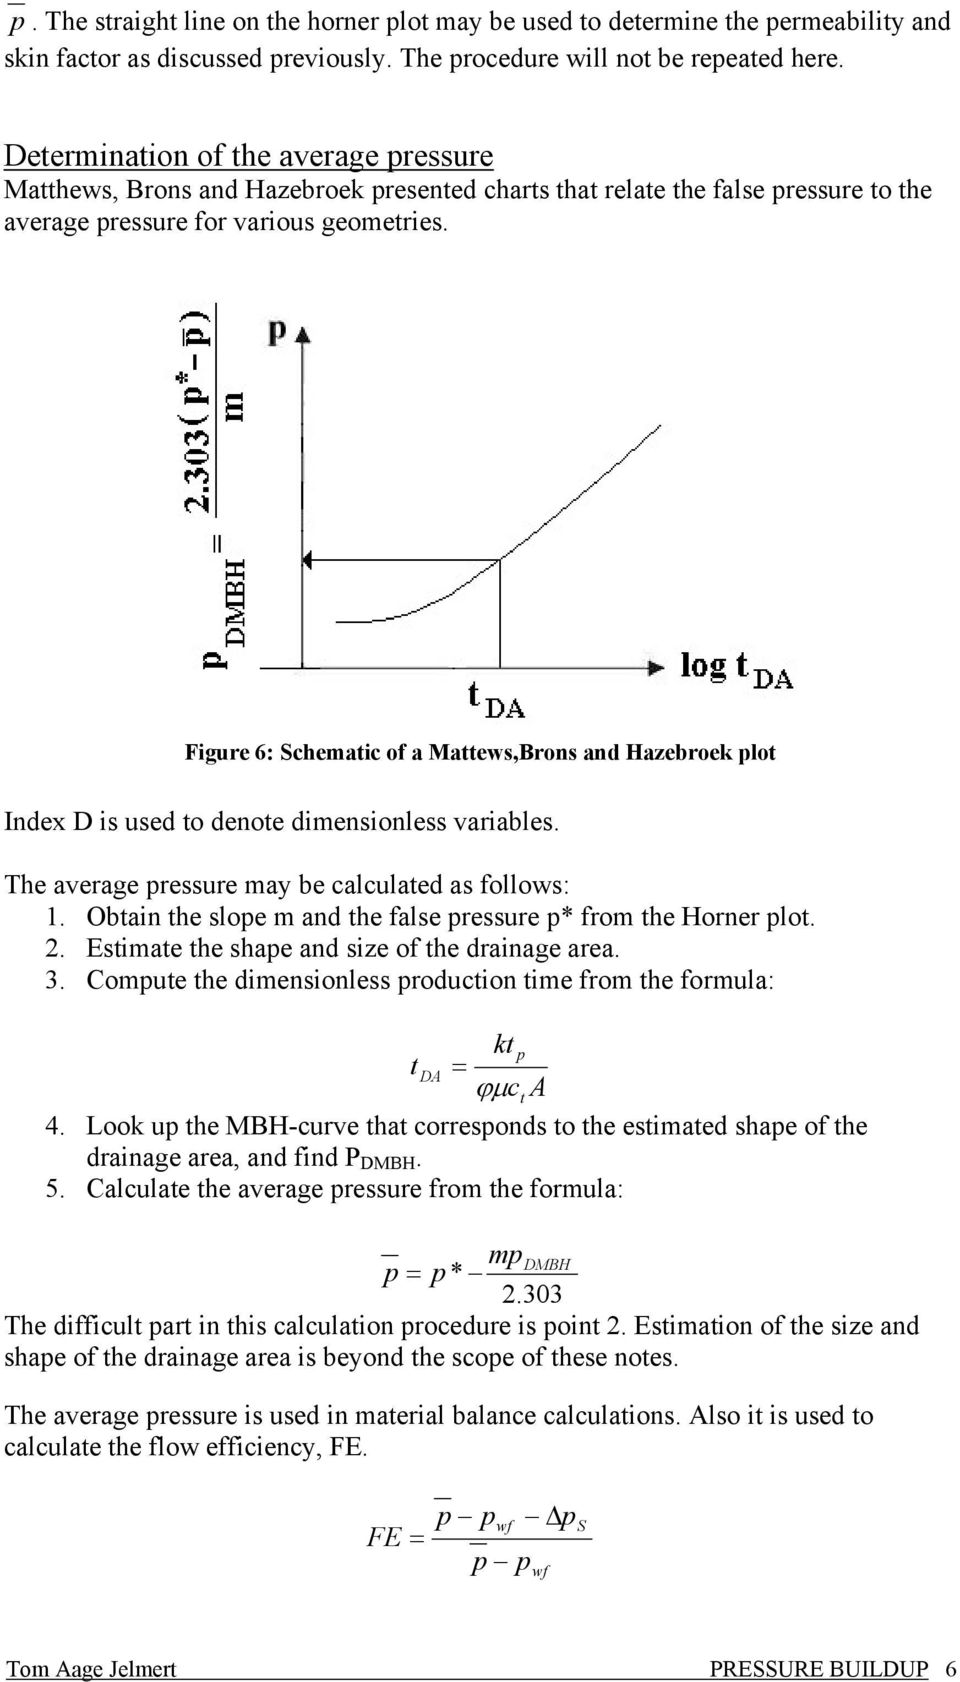 Figure 6: Schemaic of a Maews,Brons and Hazebroek lo Index D is used o denoe dimensionless variables. The average ressure may be calculaed as follows: 1.